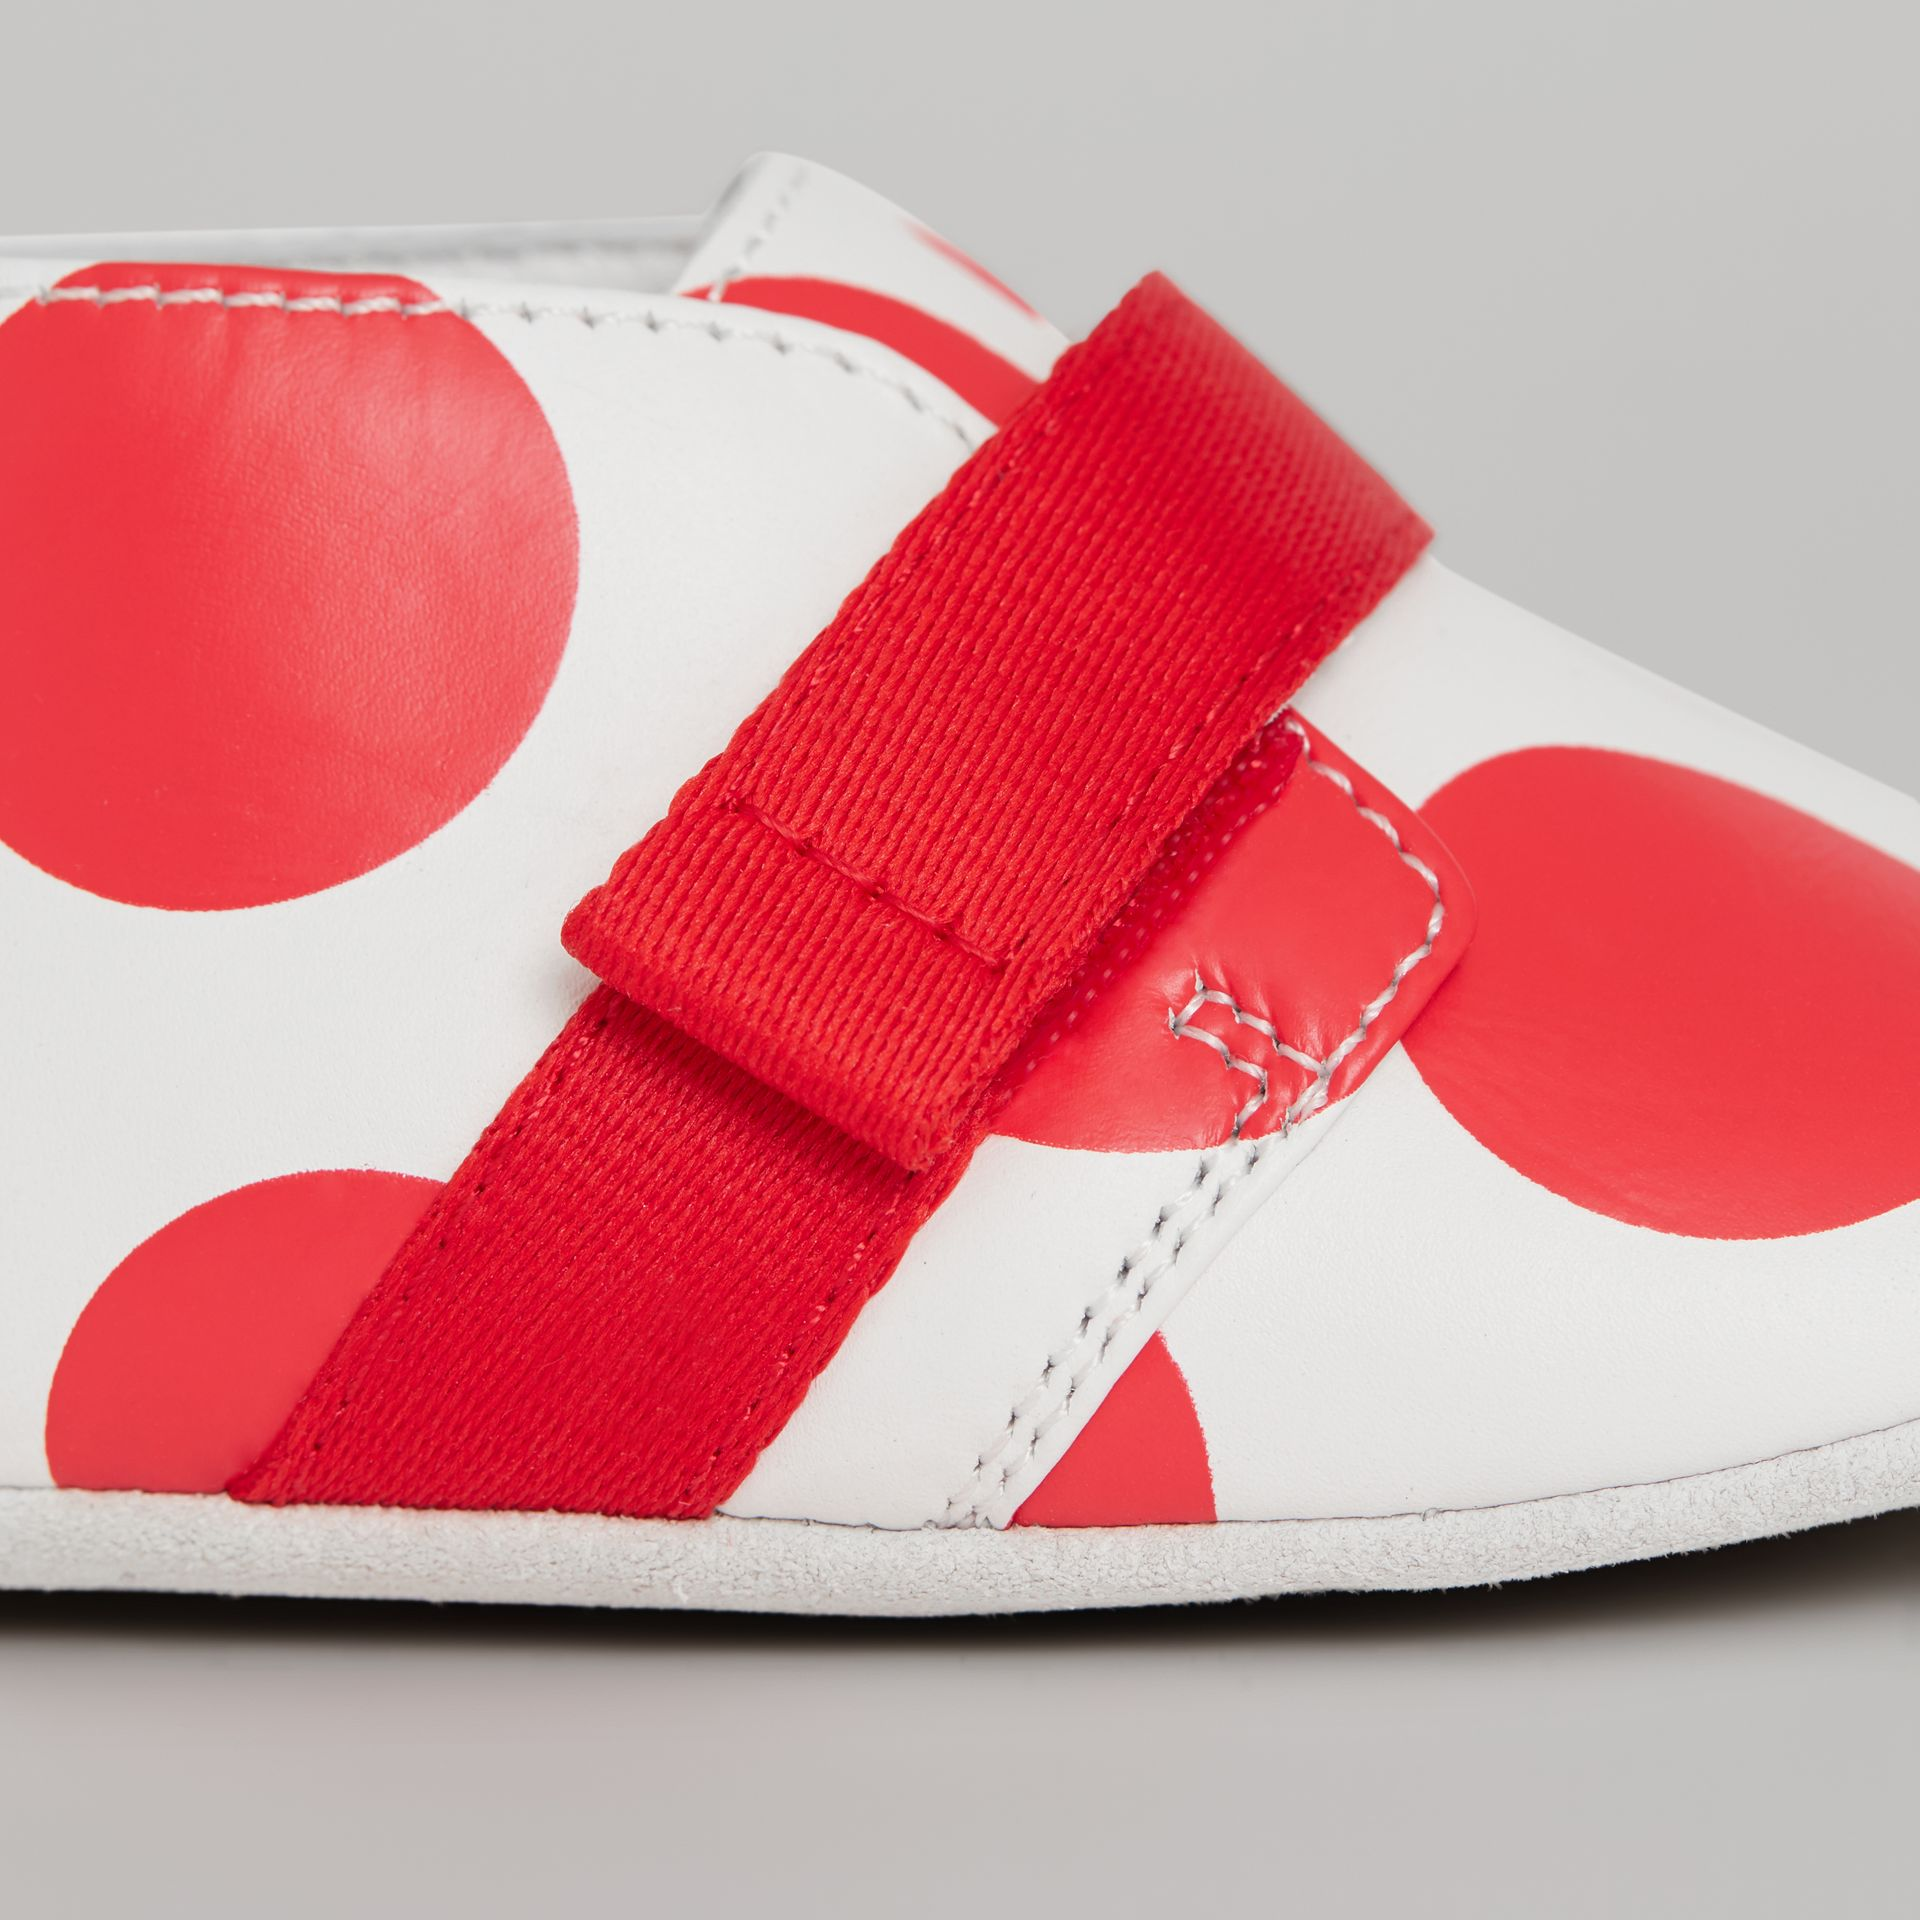 Spot Print Leather Shoes in Bright Red - Children | Burberry United States - gallery image 1